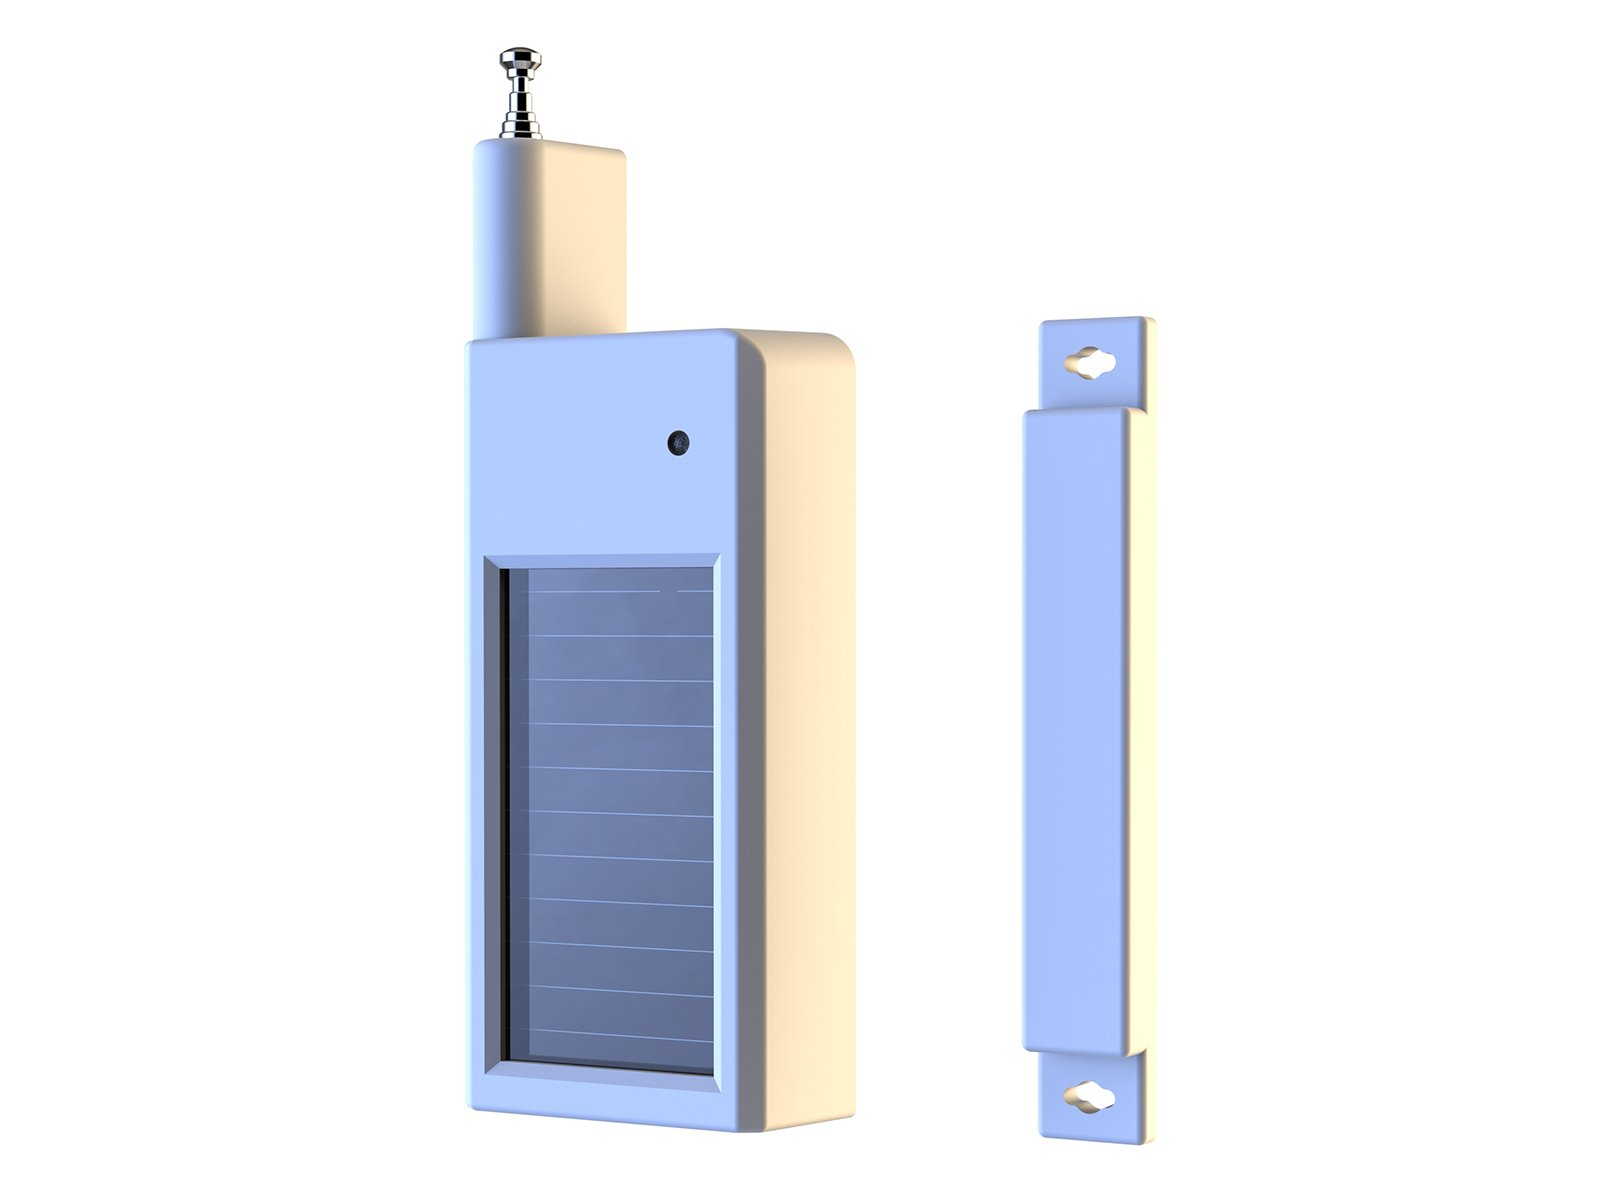 HTZSAFE Solar Wireless Door/Window Magnetic Sensor-5 Years No Need Replace The Battery-1/4 Mile Long Range Transmission Range-Compatible With All HTZSAFE Wireless Alarm